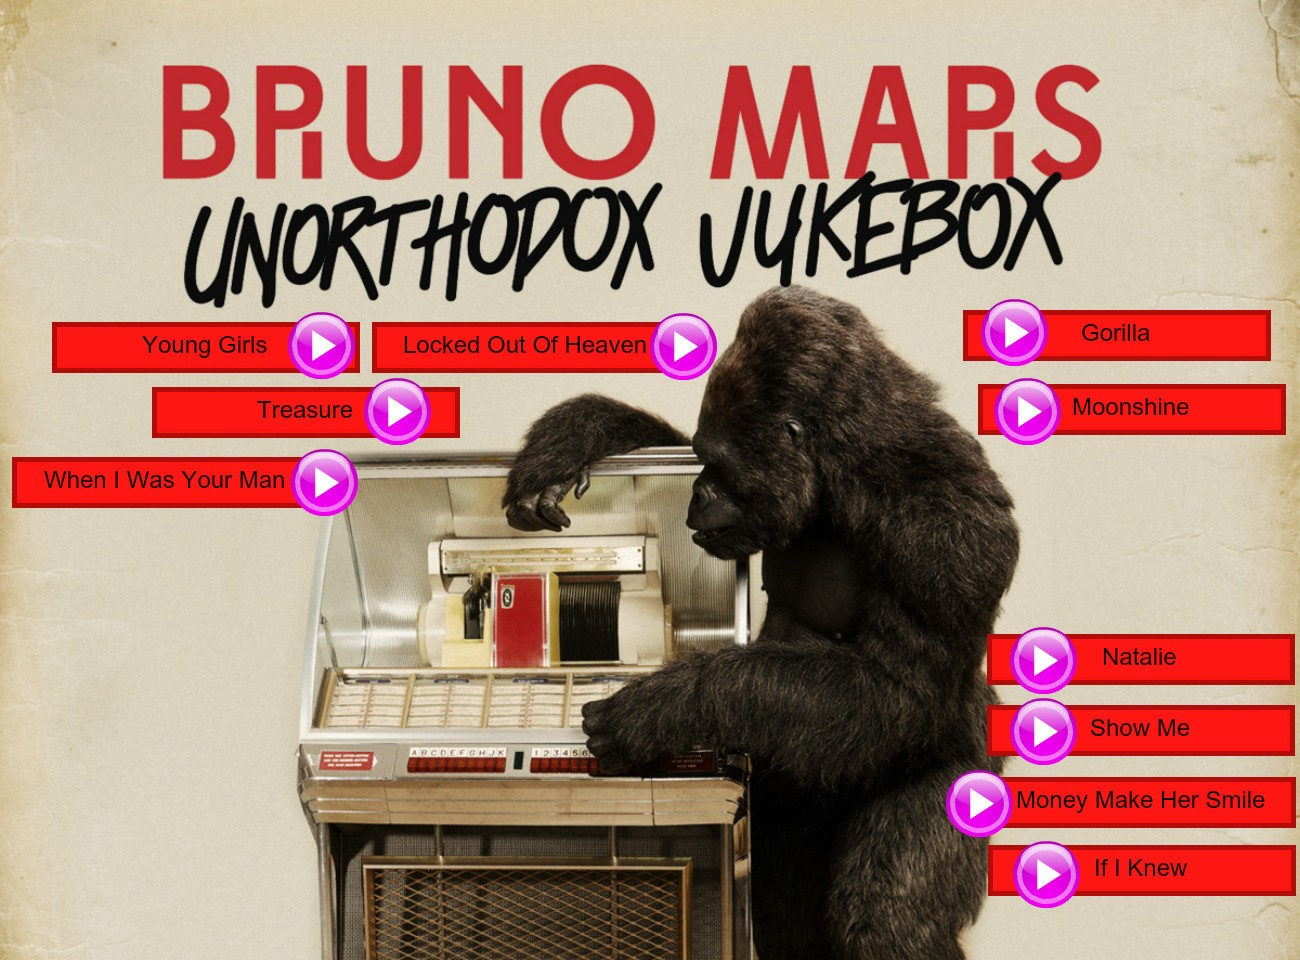 unorthodox-jukebox-source